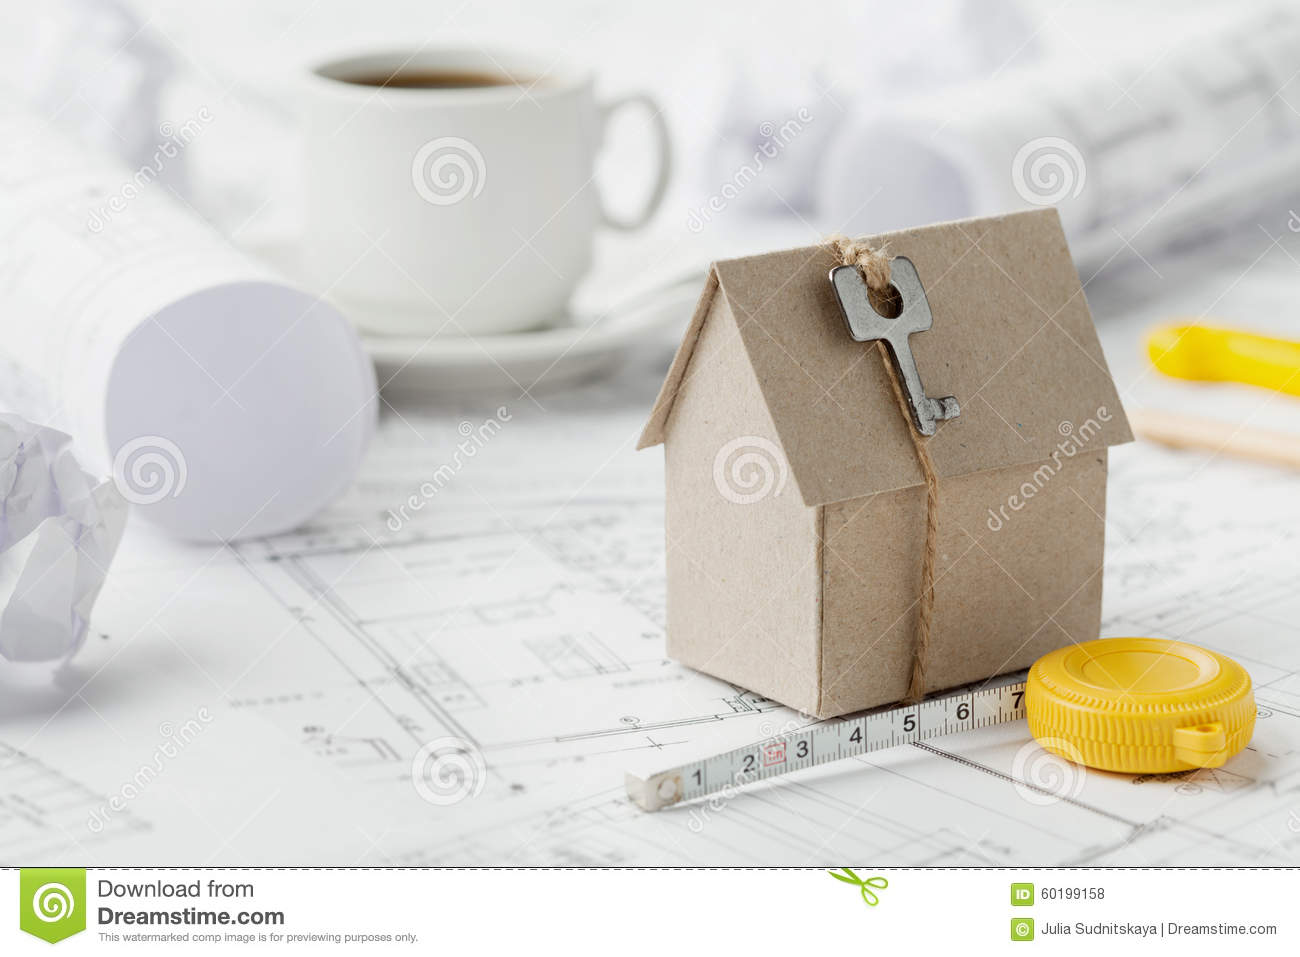 Model cardboard house with key and tape measure on blueprint home download model cardboard house with key and tape measure on blueprint home building architectural malvernweather Images